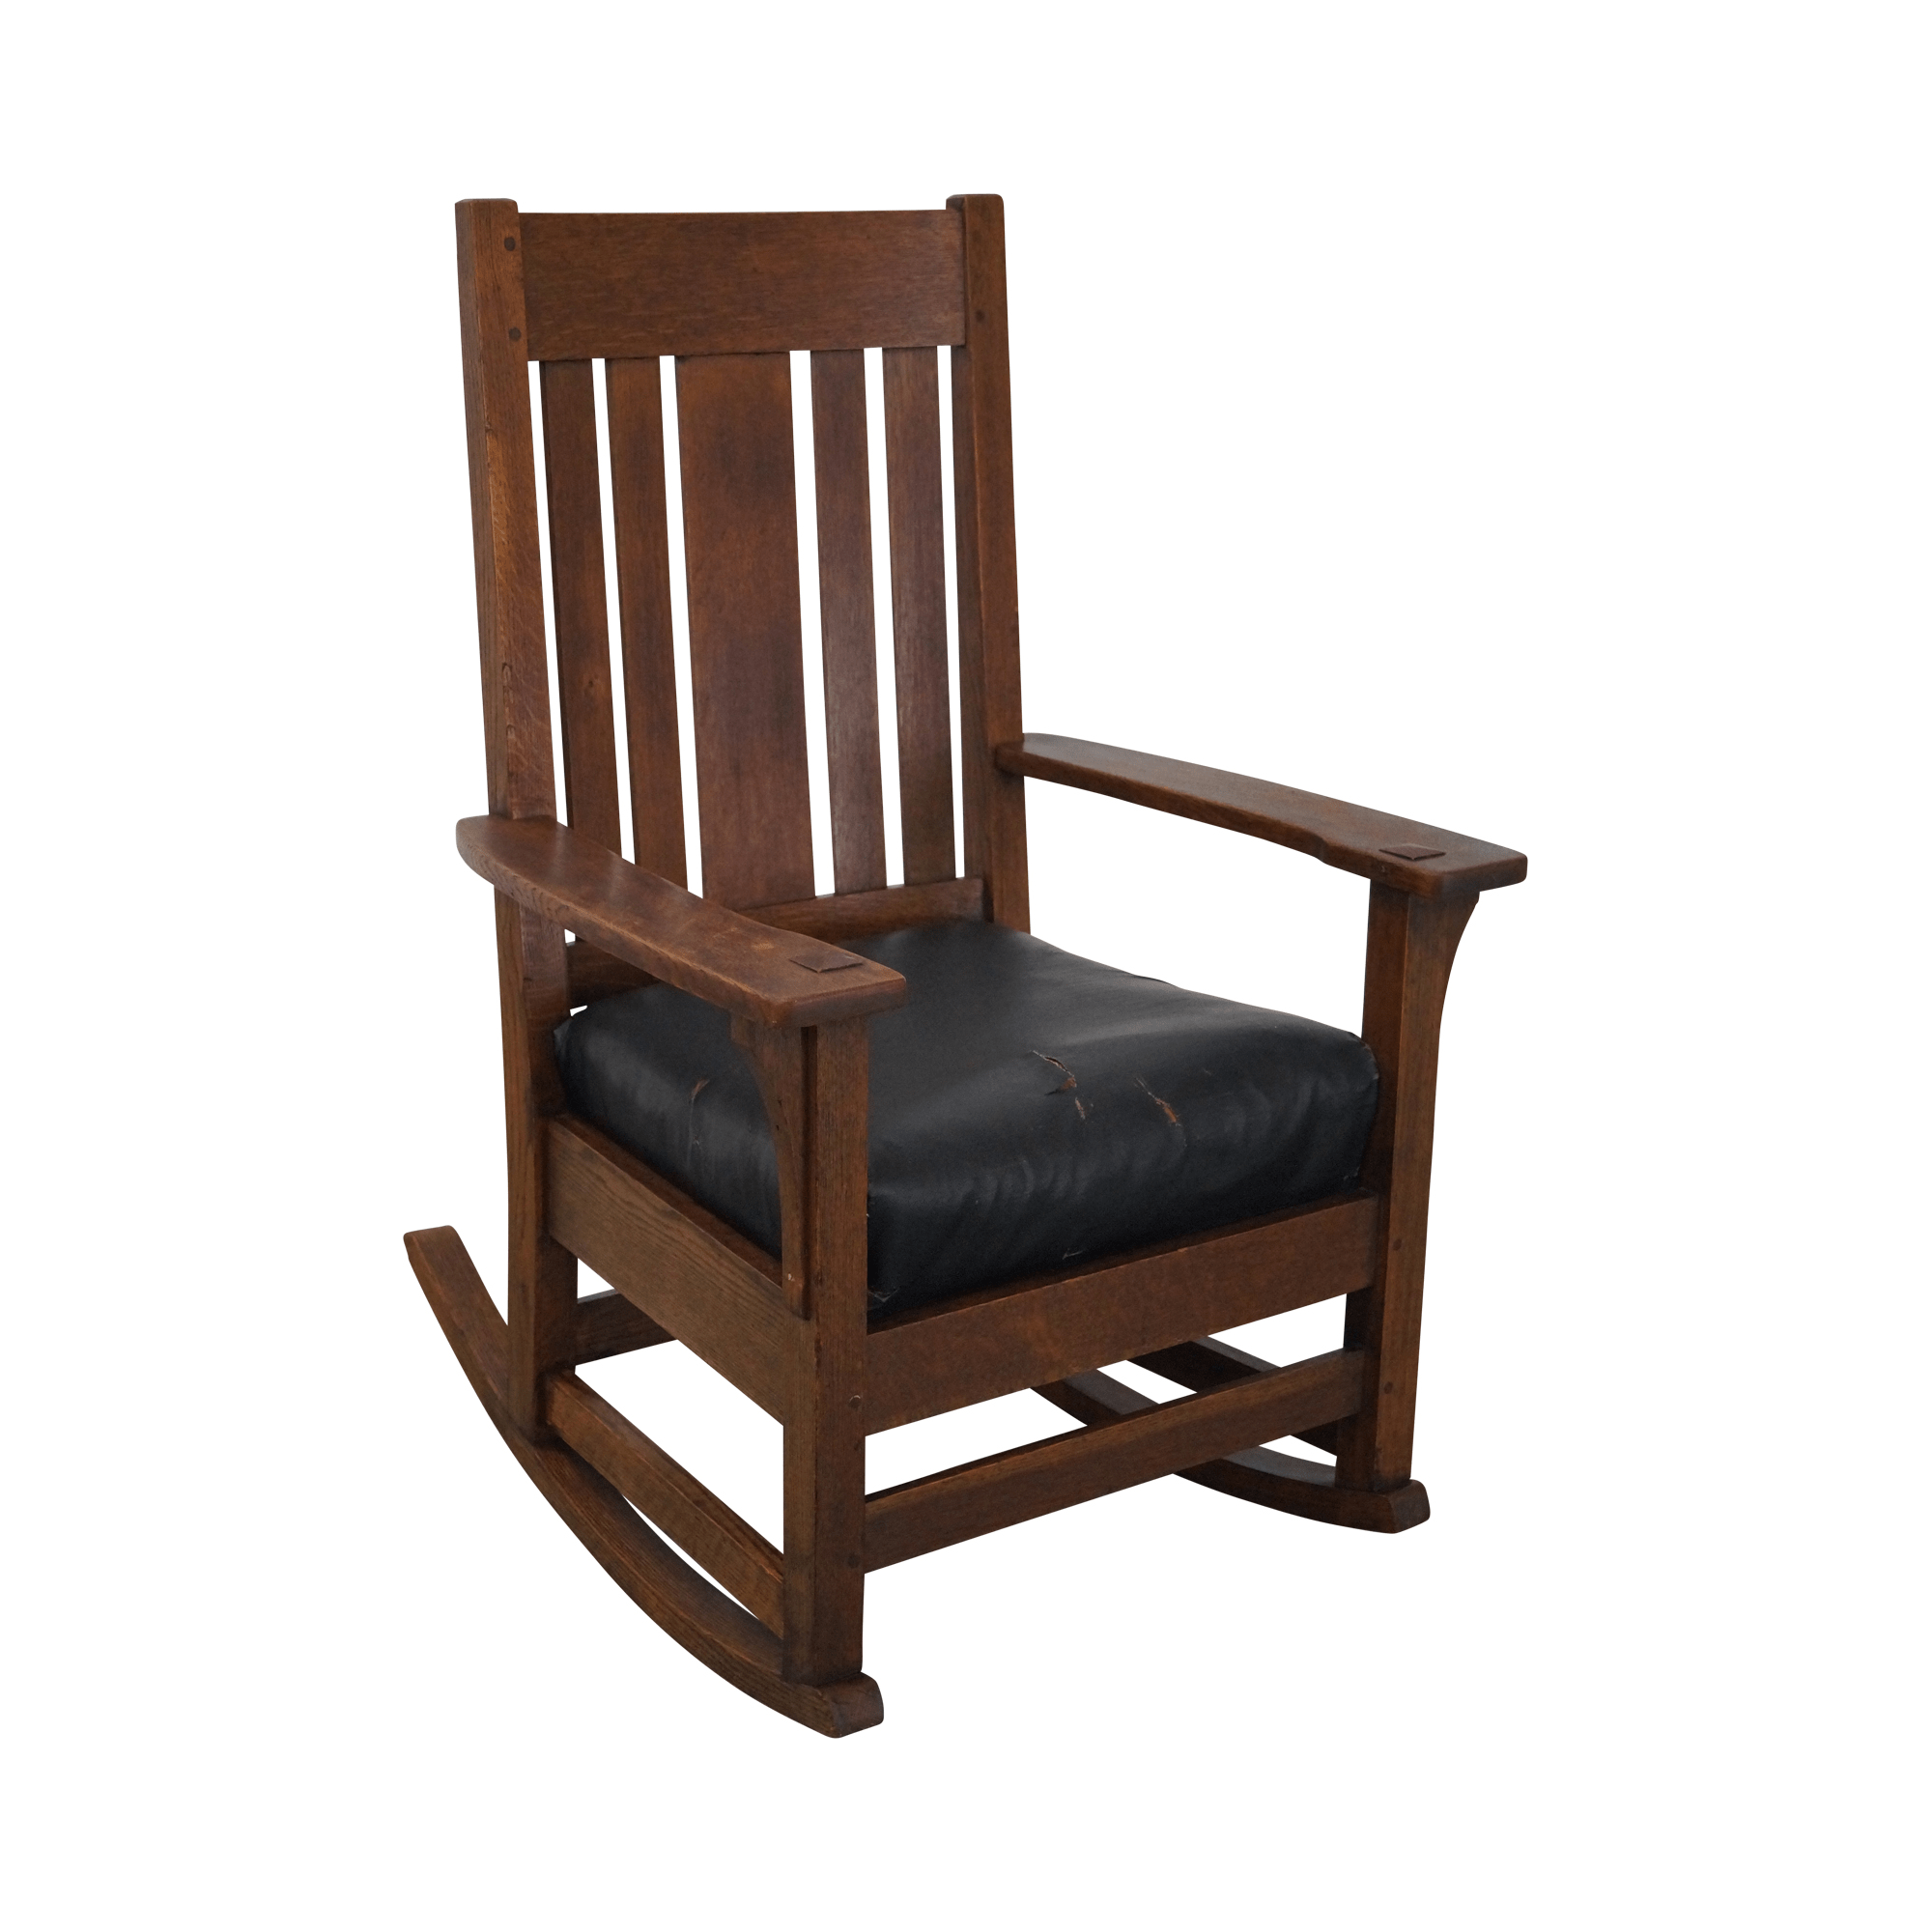 Mission Chairs Antique Mission Oak Rocking Chair Chairish